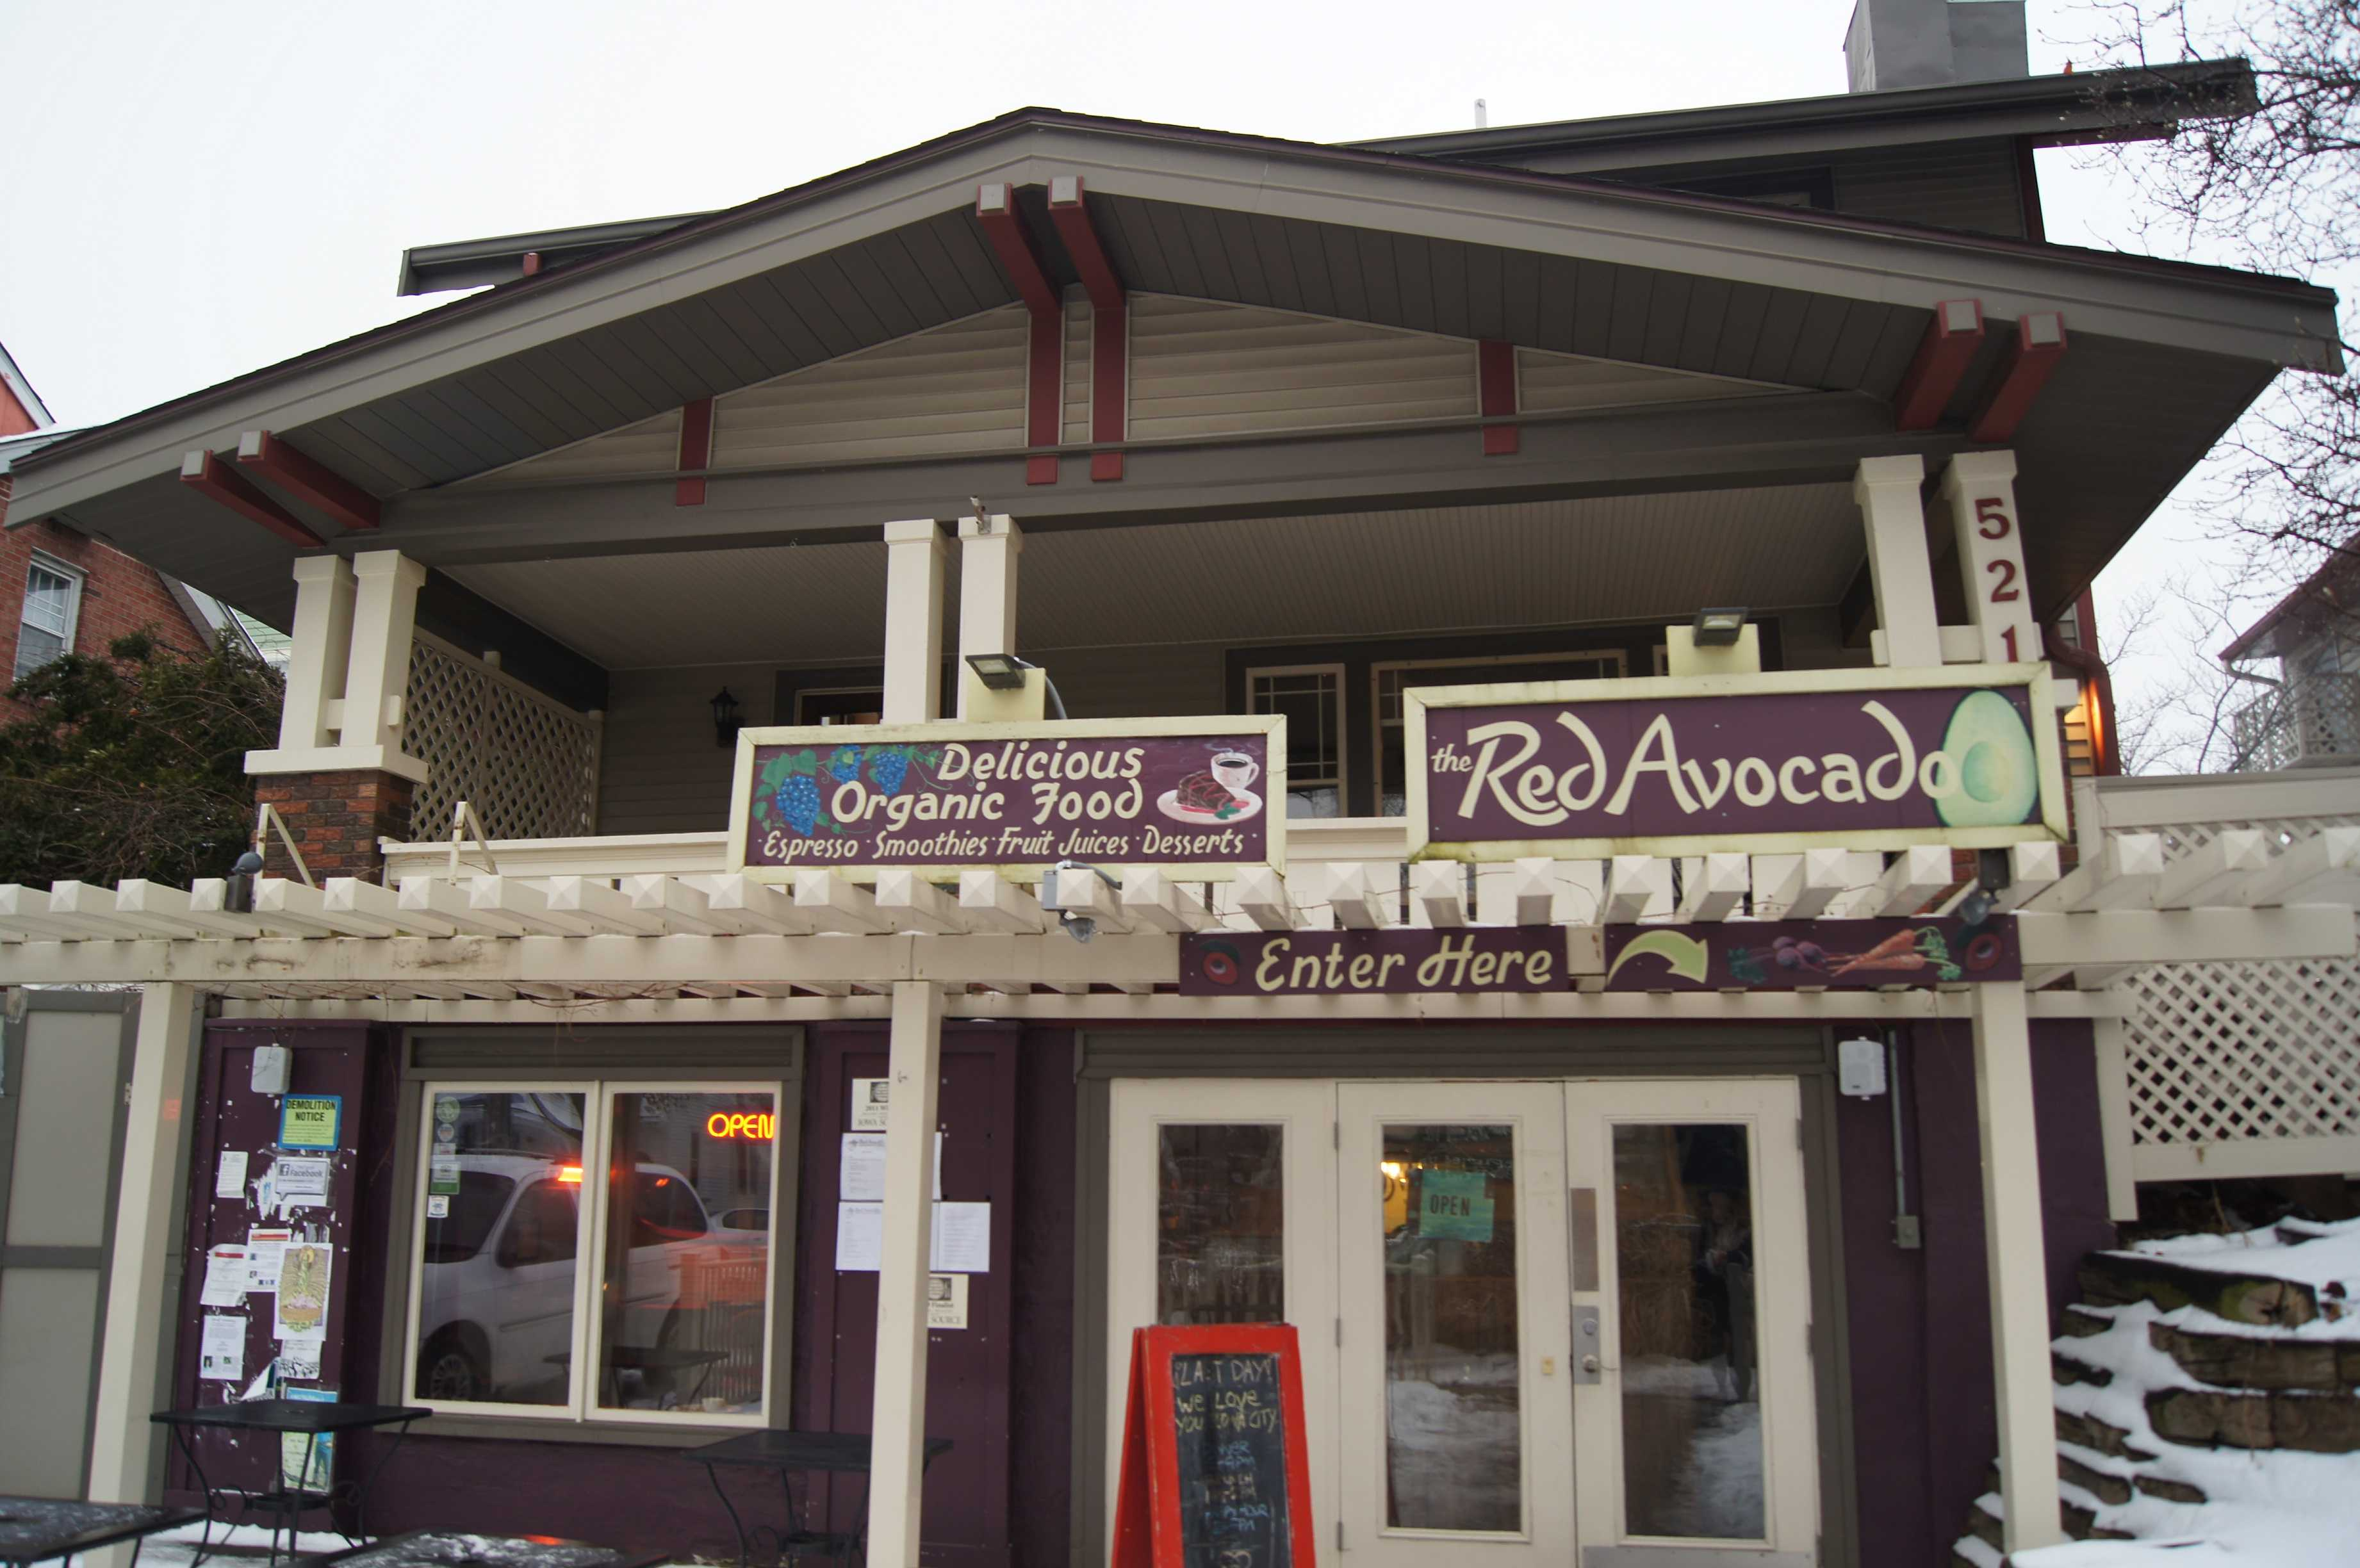 The Red Avocado stands on its last day open, Sunday January 22nd, 2012